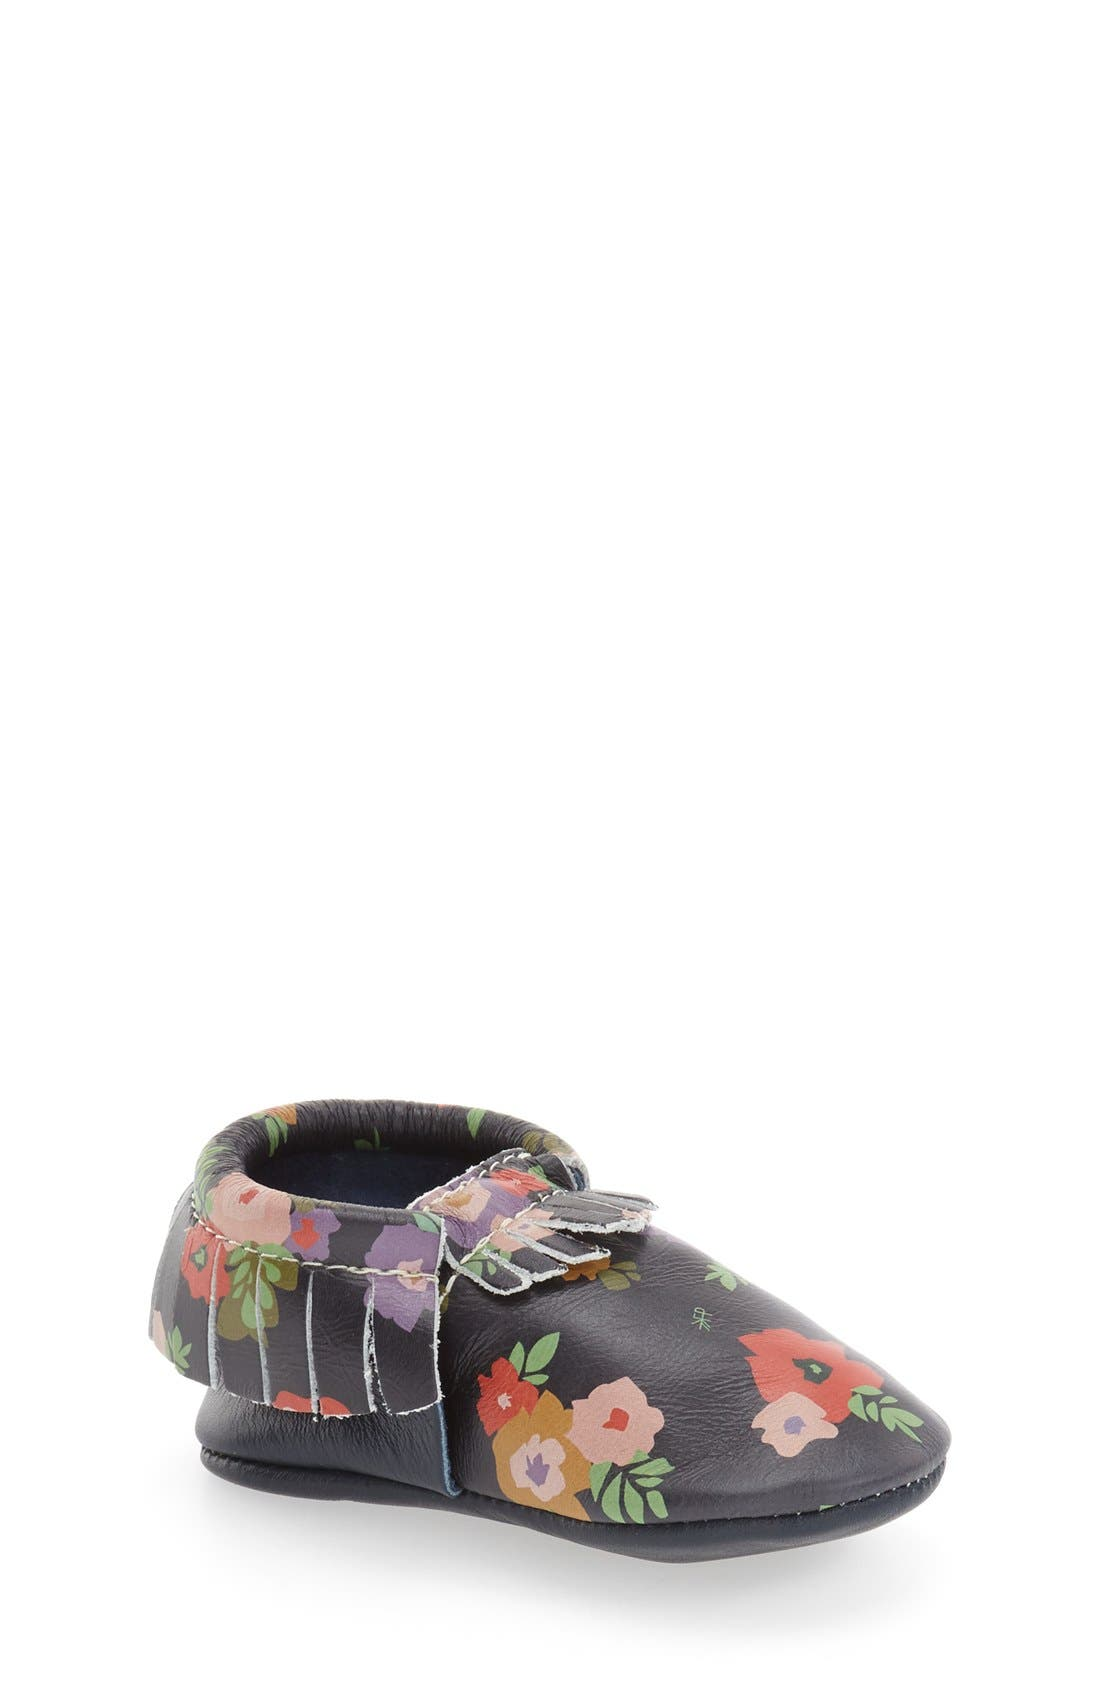 FRESHLY PICKED Flower Print Moccasin, Main, color, 411